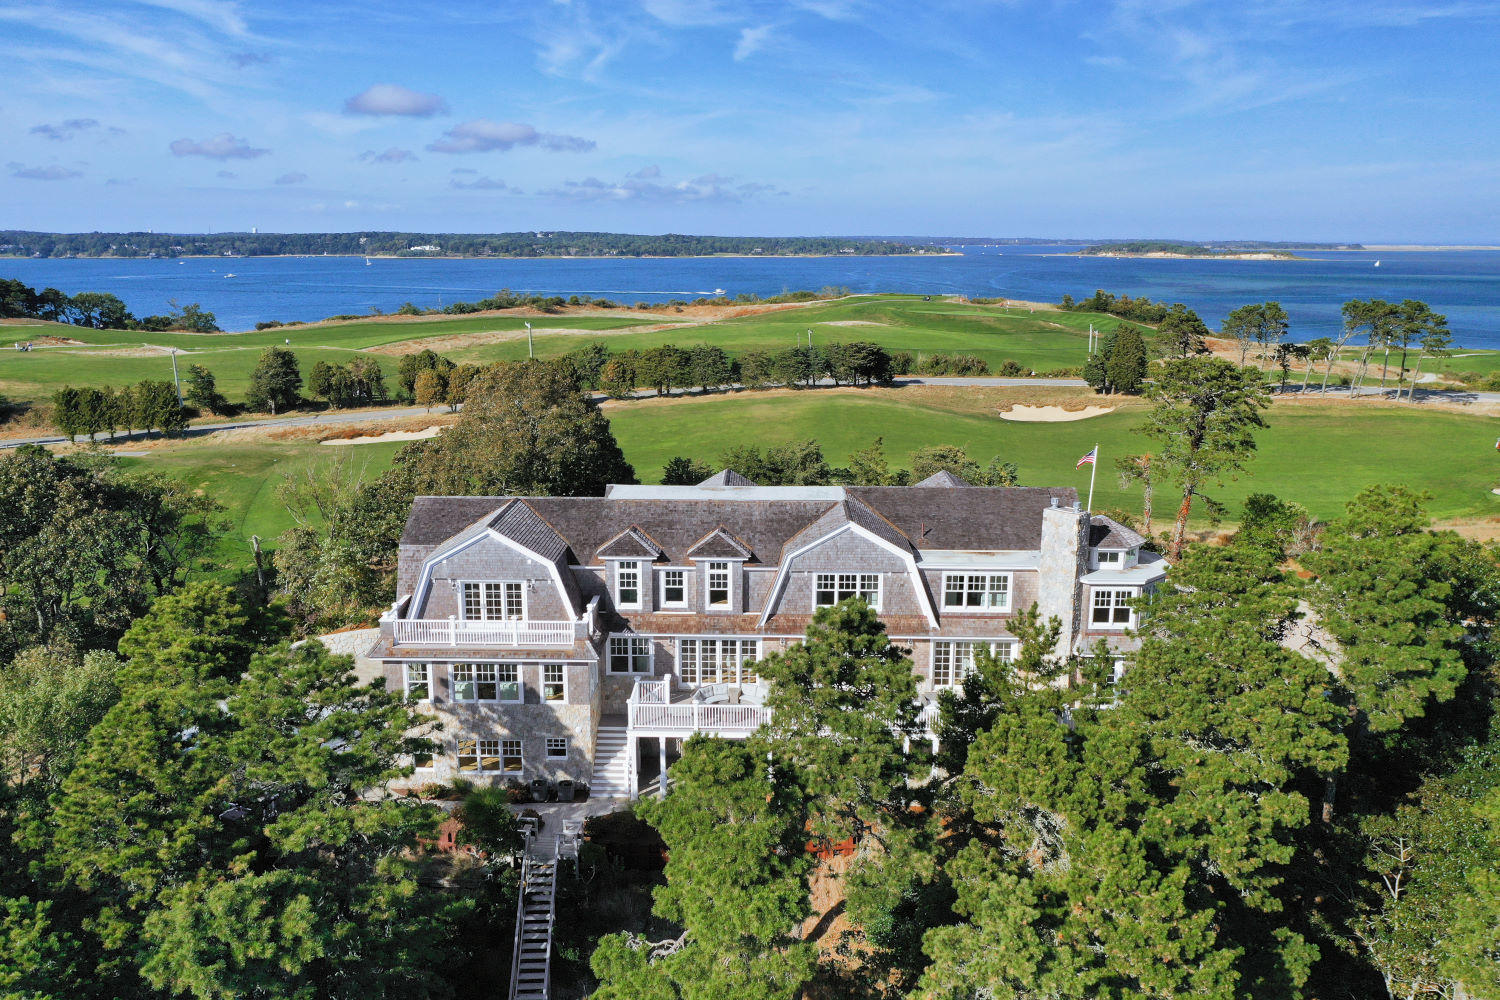 click to view more details 558 Fox Hill Road, Chatham, MA 02633